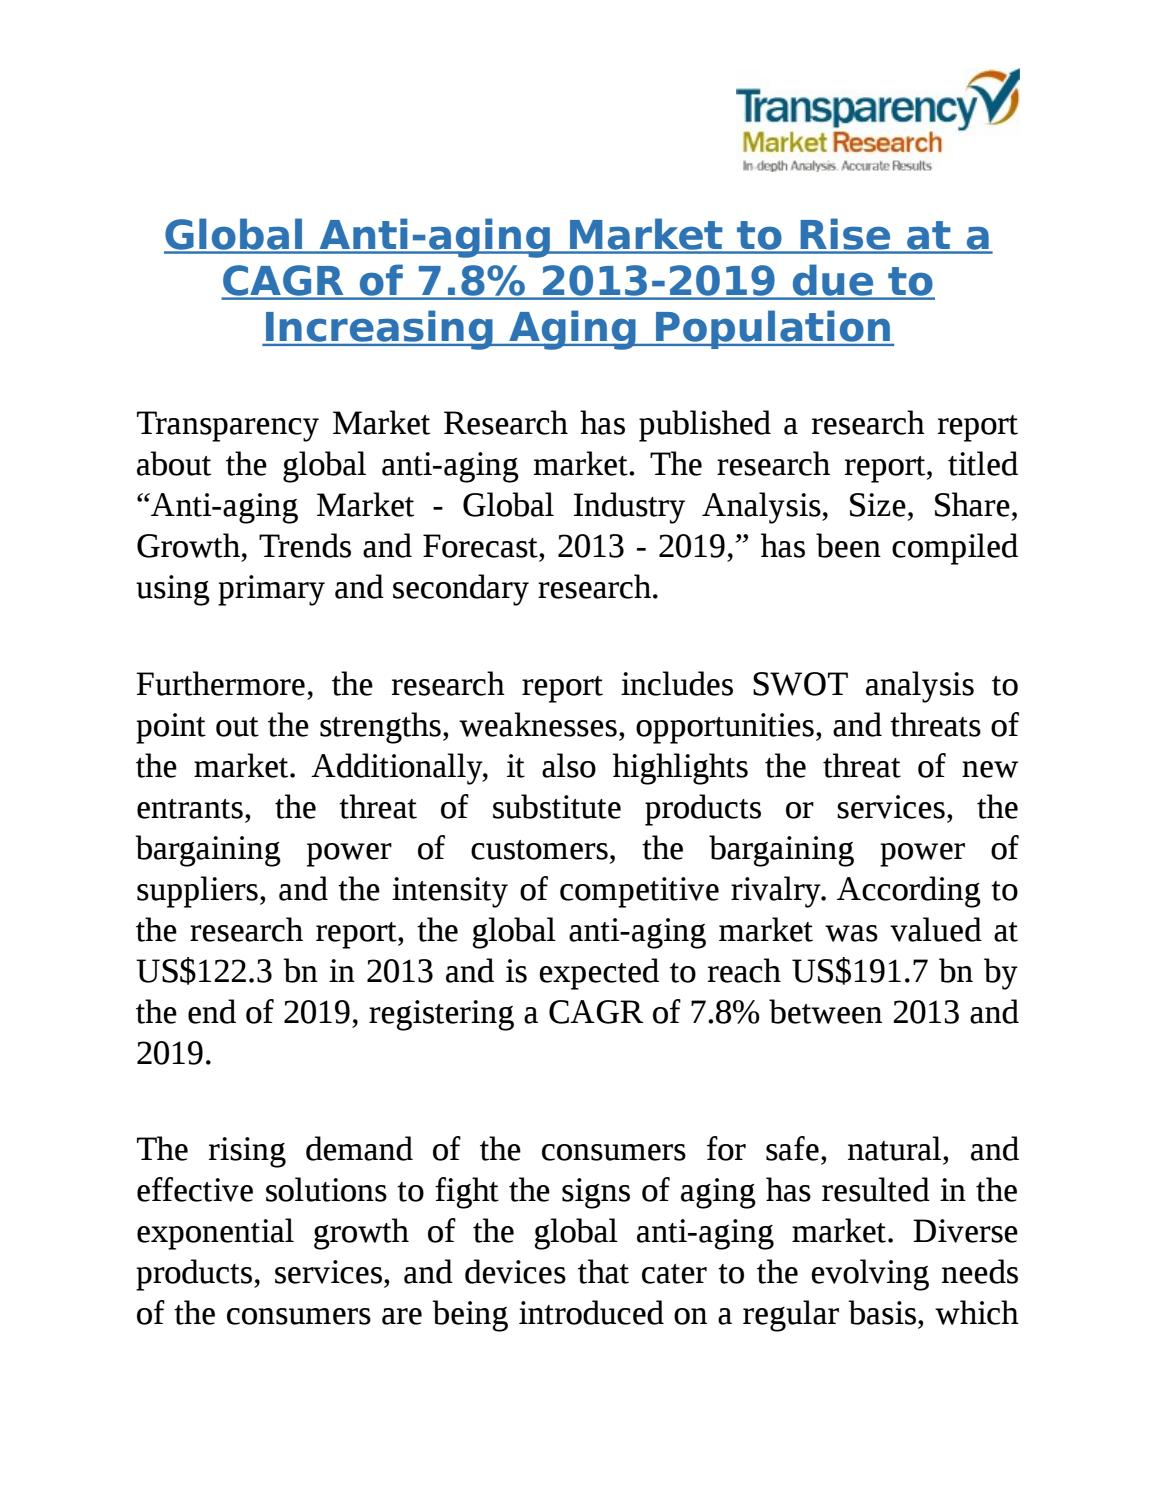 Global Anti-aging Market to be Worth US$191 7 Billion in